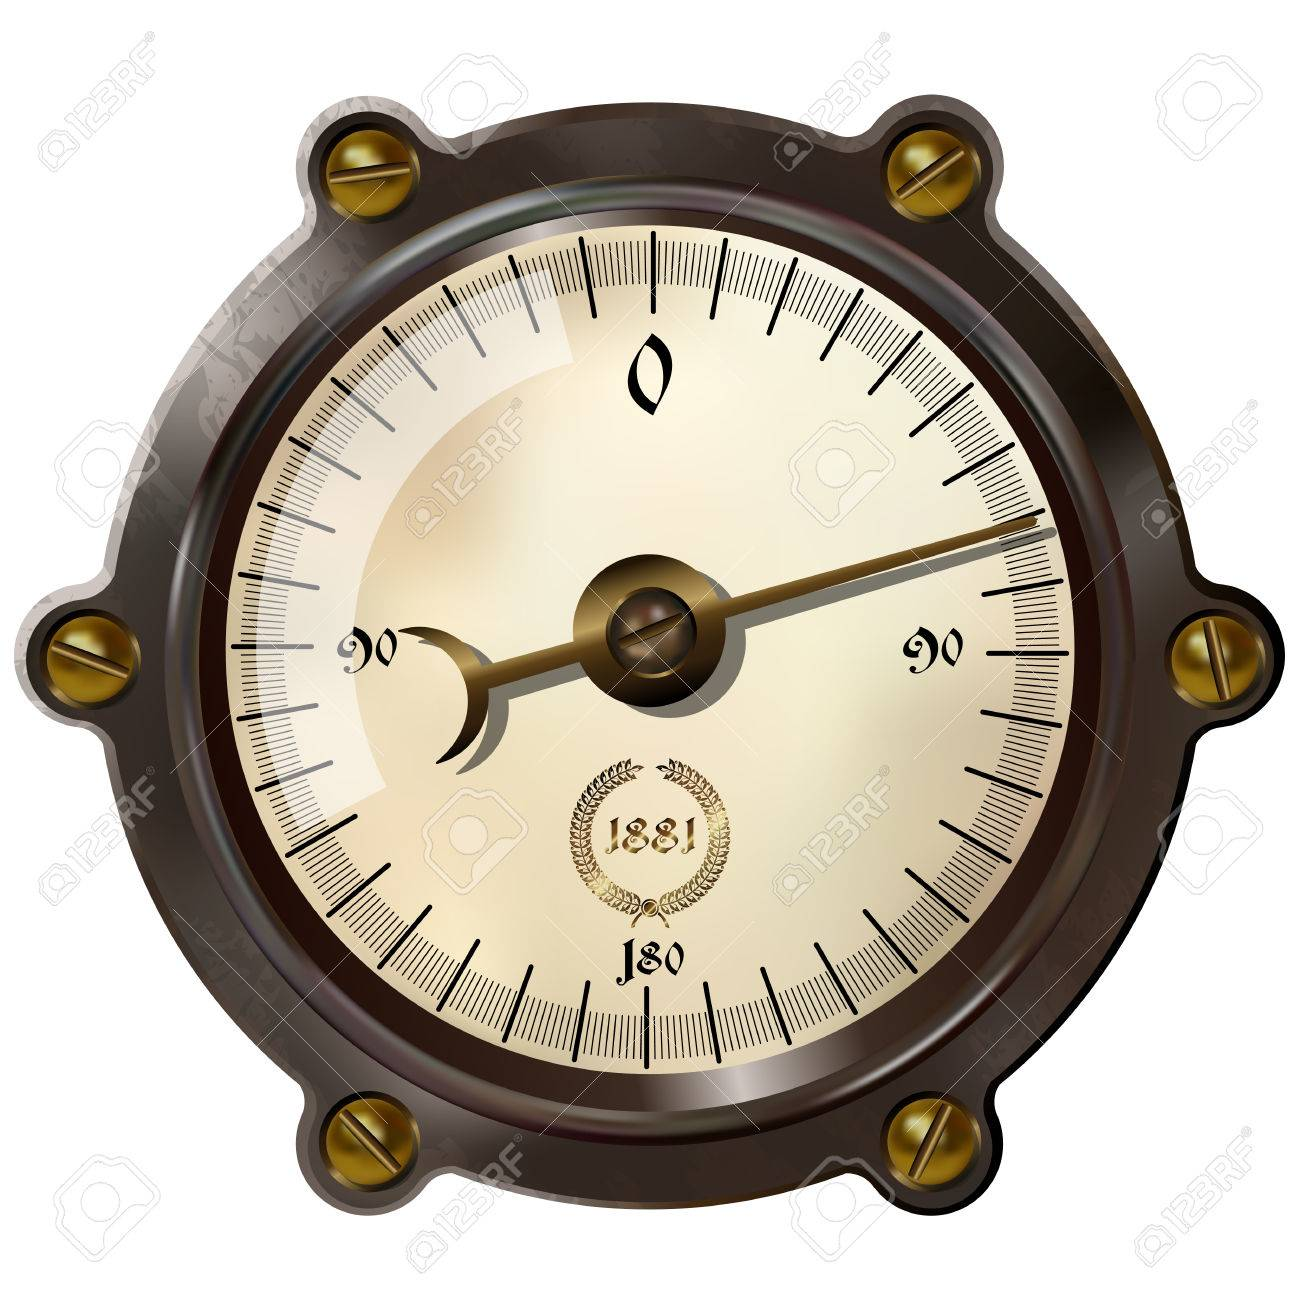 Ancient measuring device in the style of steampunk Stock Vector - 37576812